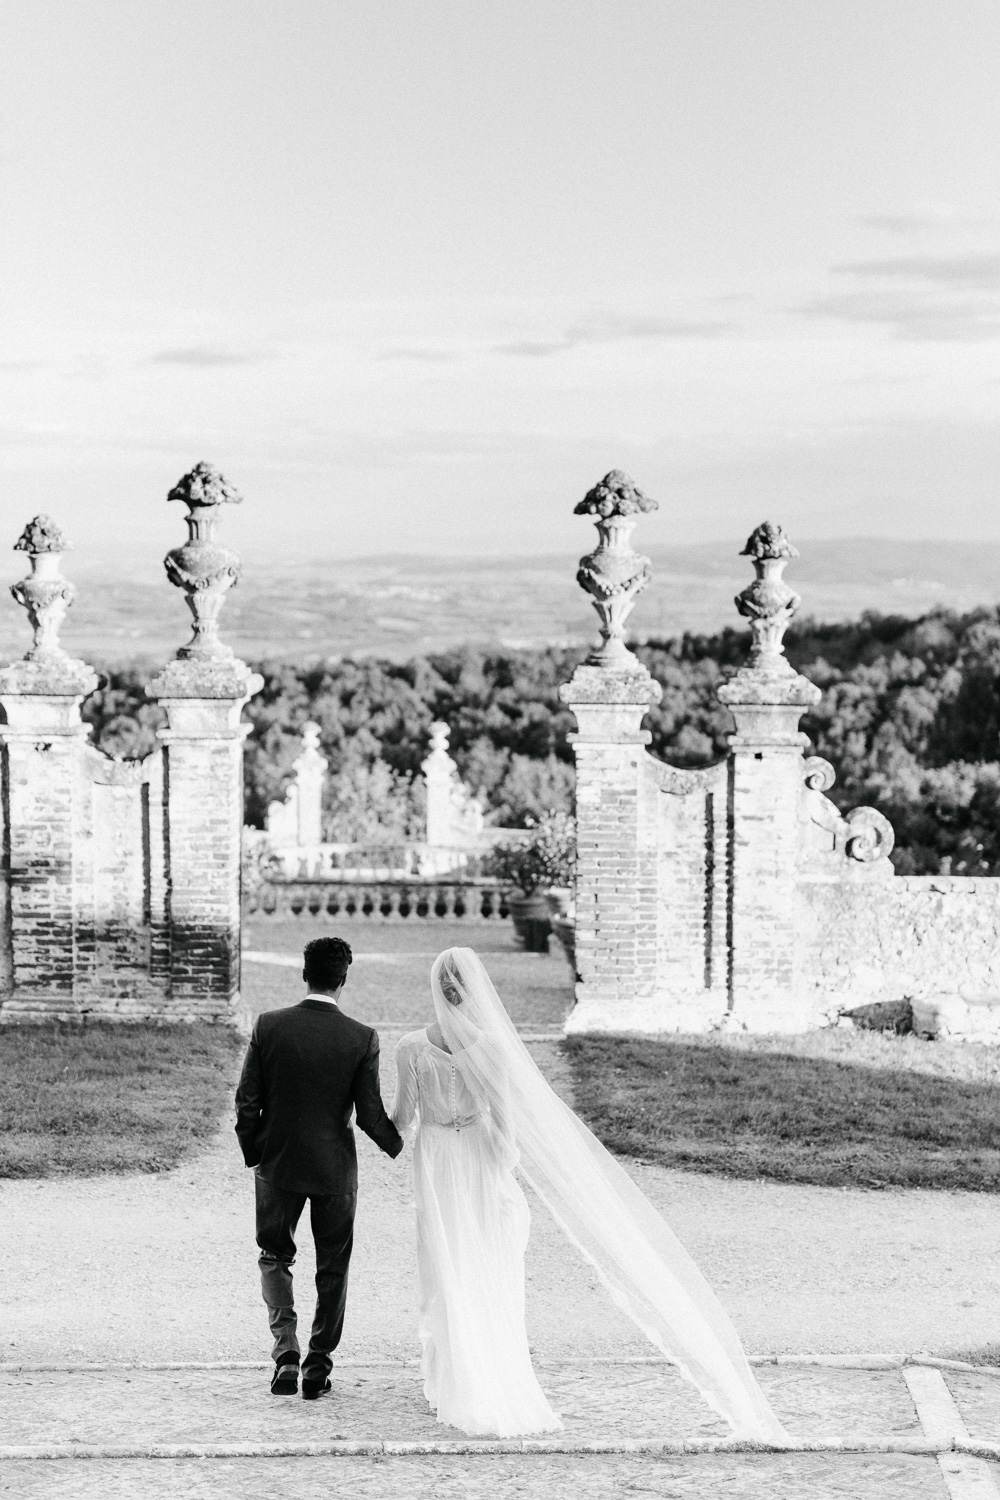 Tuscany_Wedding_Photographer_Castello_di_Celsa_Katka_Koncal_36